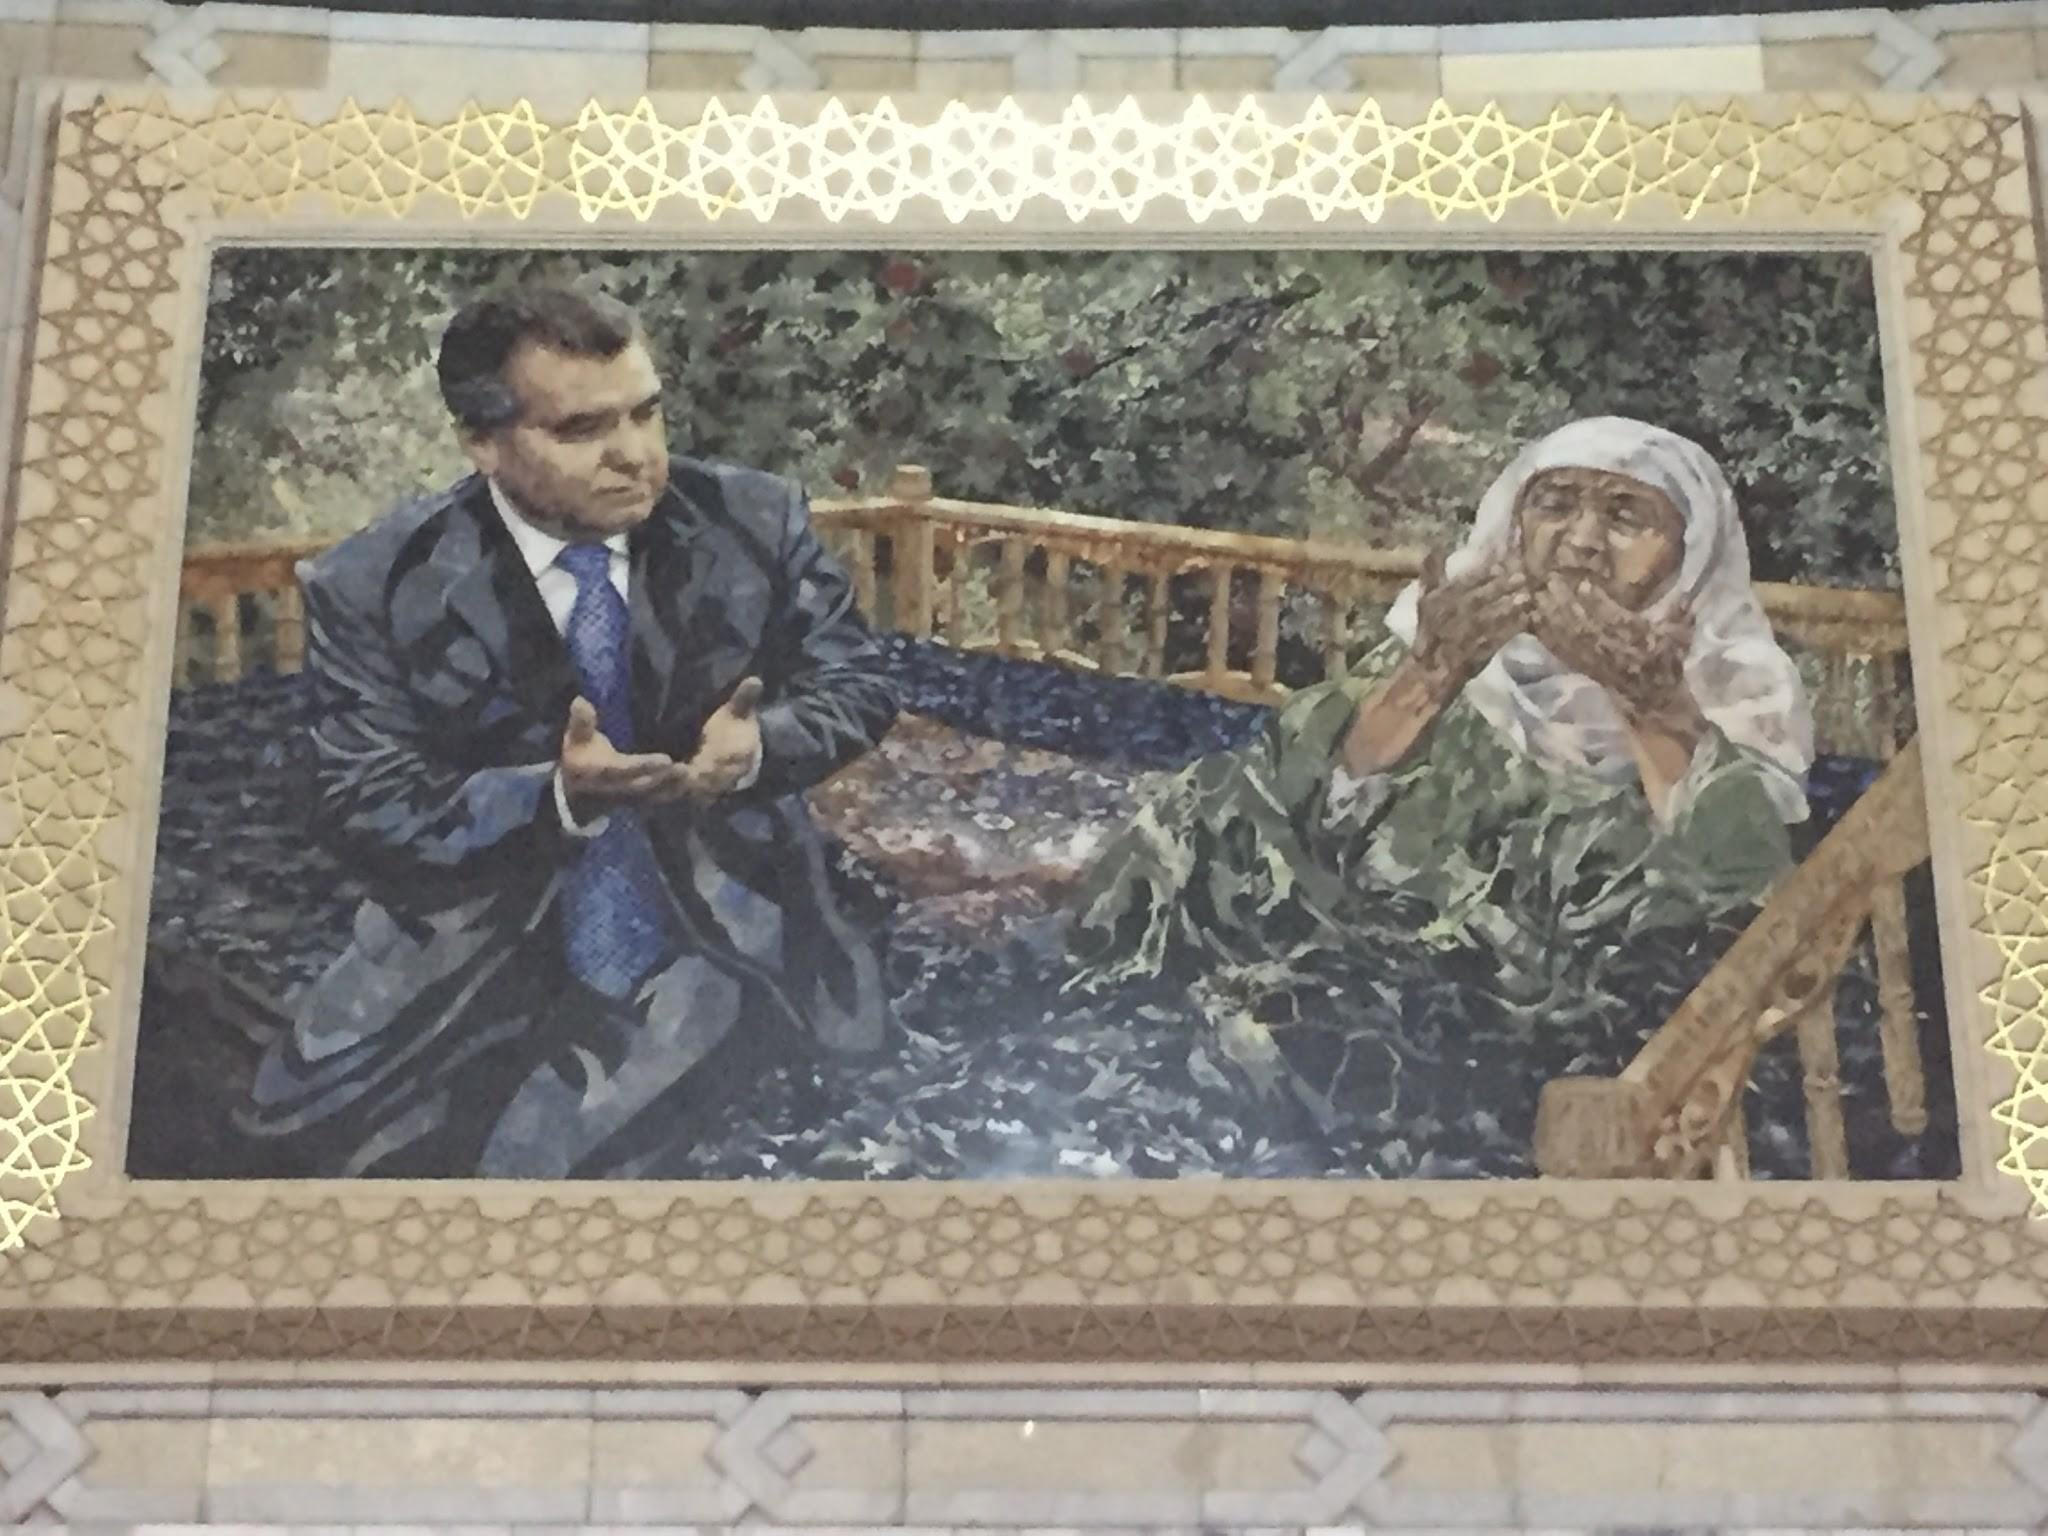 Nuances of Religious Laws and Enforcement in Tajikistan